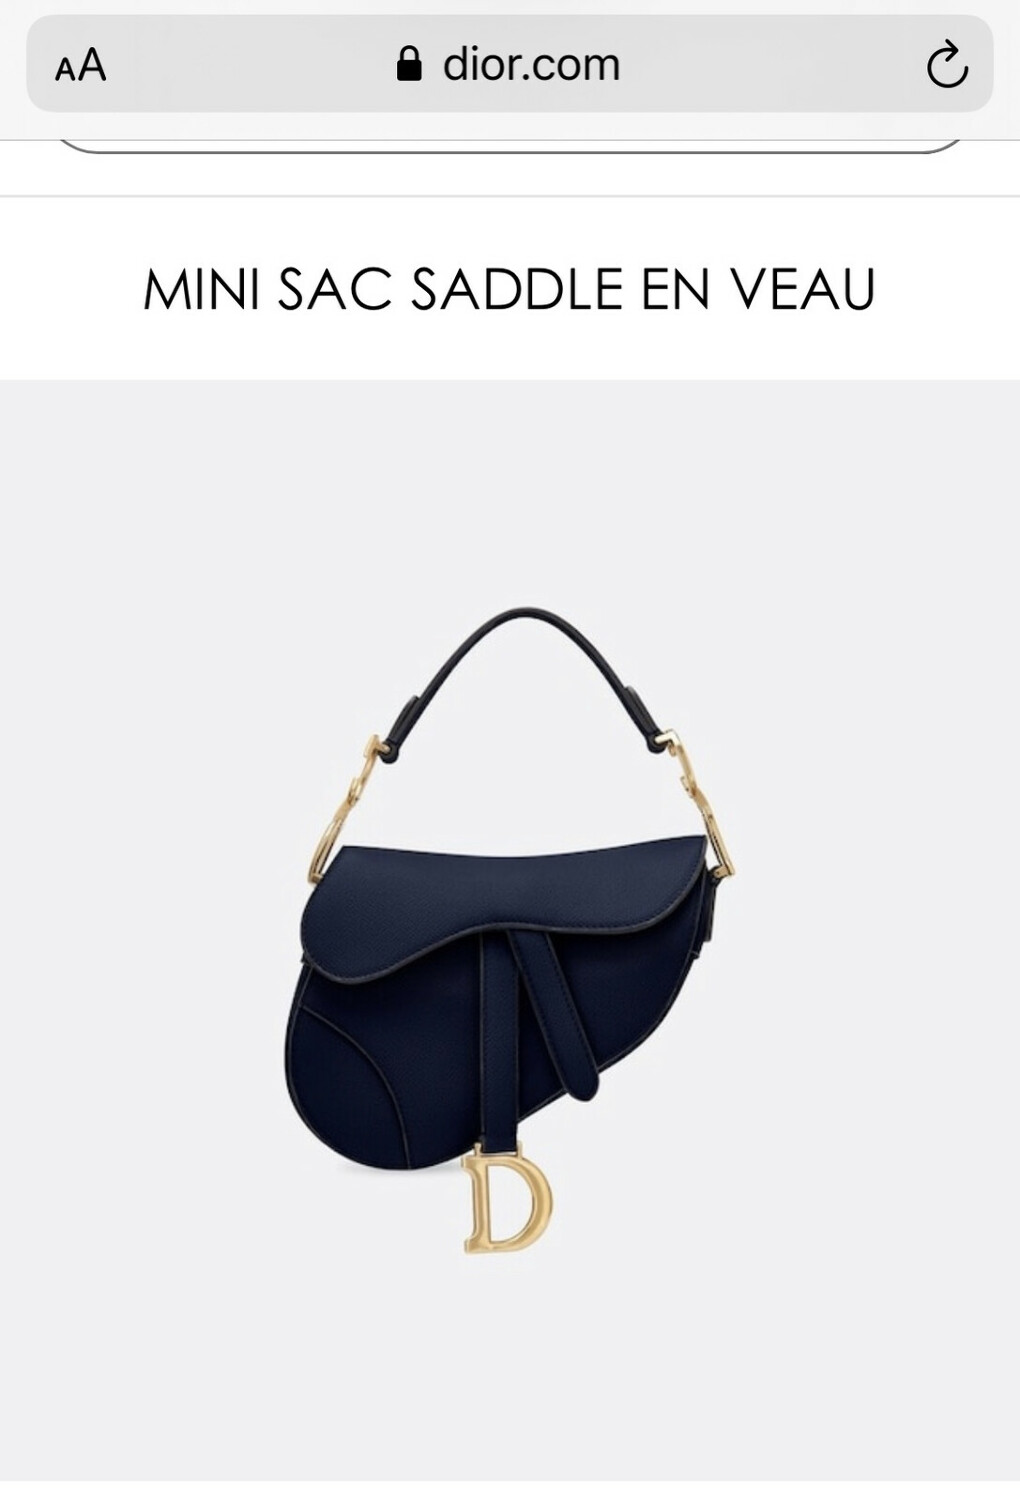 https://www.dior.com/fr_fr/products/couture-M0447CWVG_M85B_TU-mini-sac-saddle-en-veau